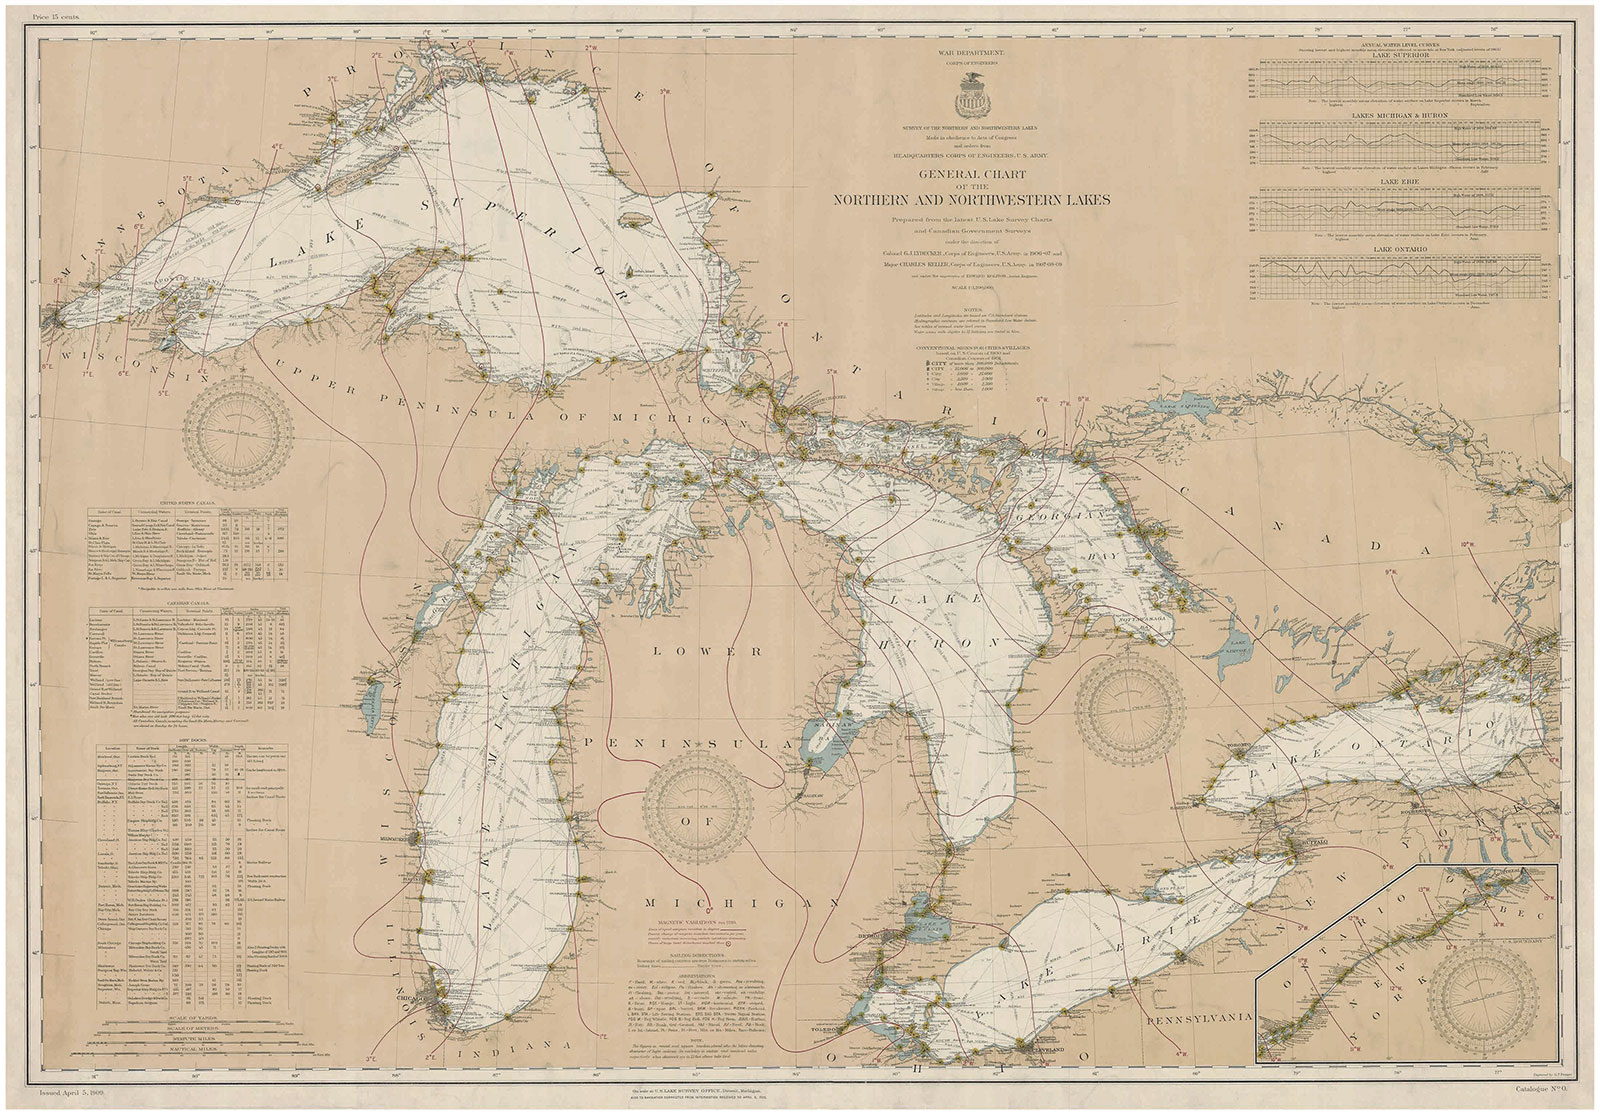 A 1909 nautical chart of the Great Lakes